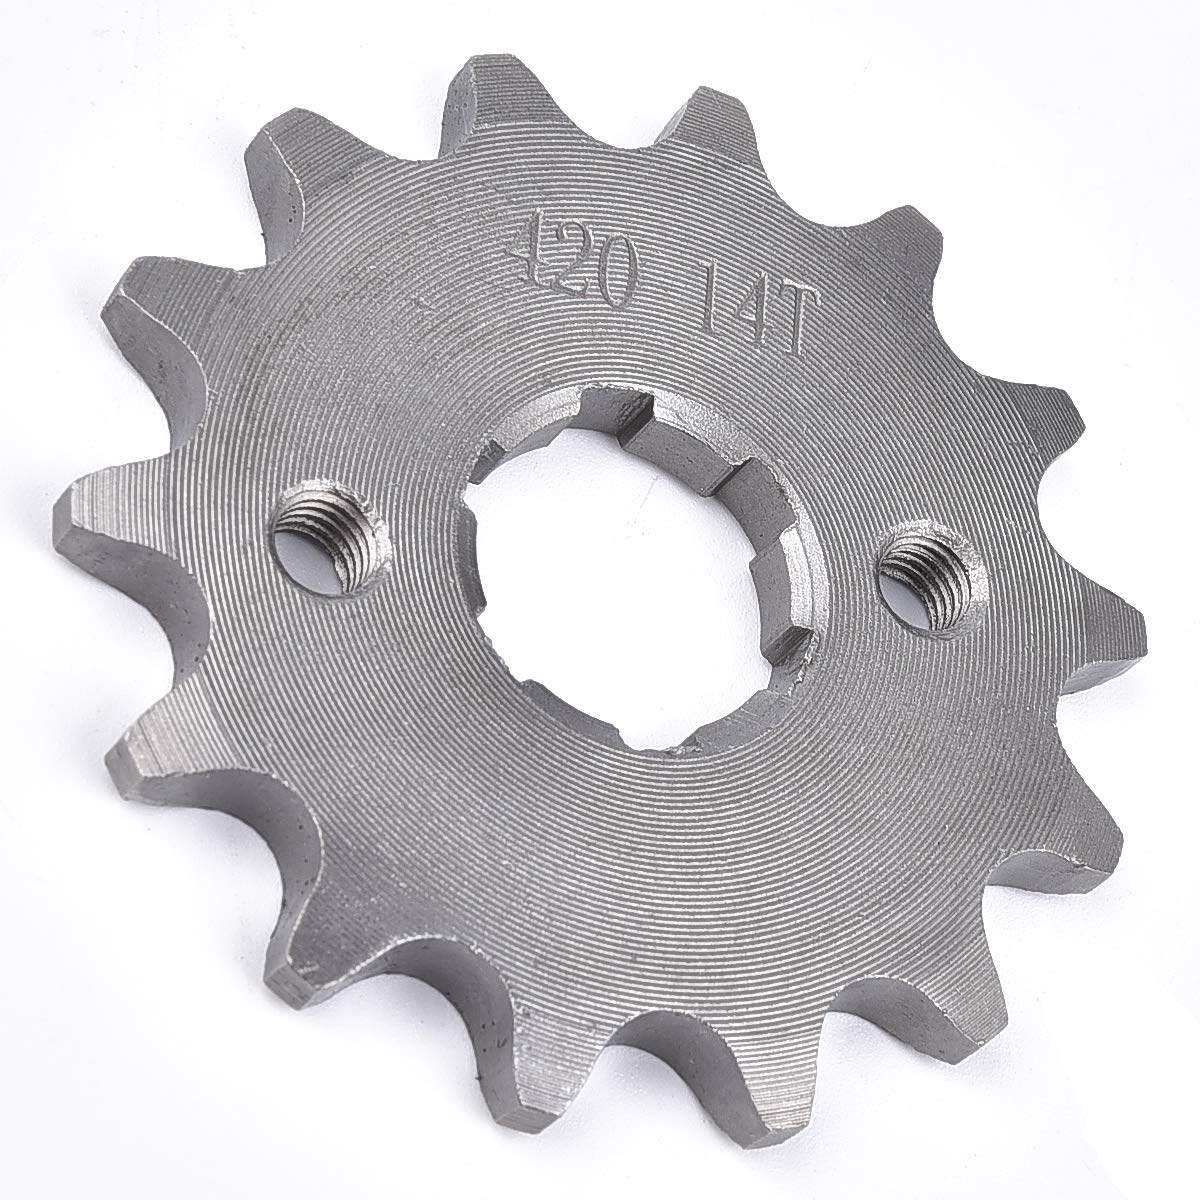 420 14 14T 20MM FRONT COUNTER SPROCKET LIFAN LONCIN ATV PIT BIKE 70 125 140 CC